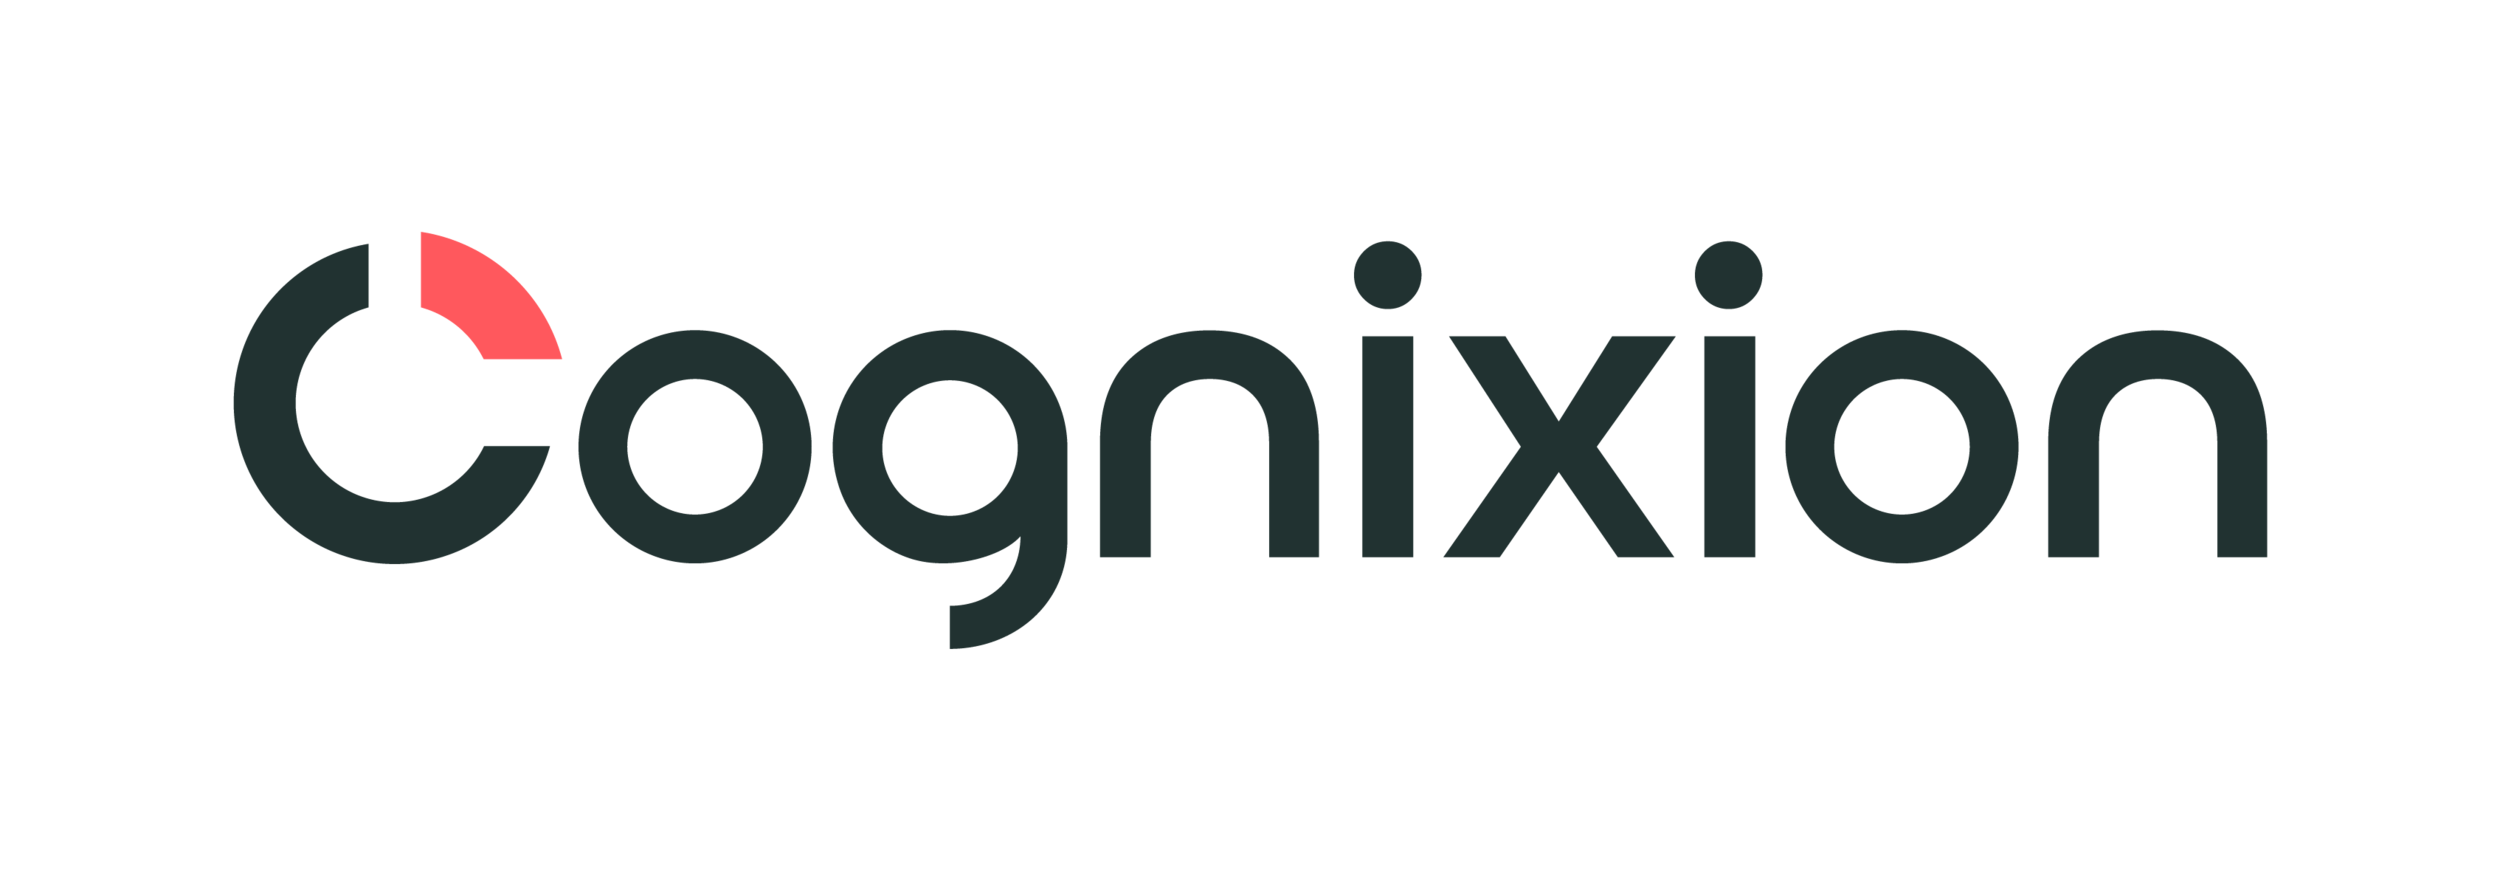 Cognixion headset combines BCI with AR